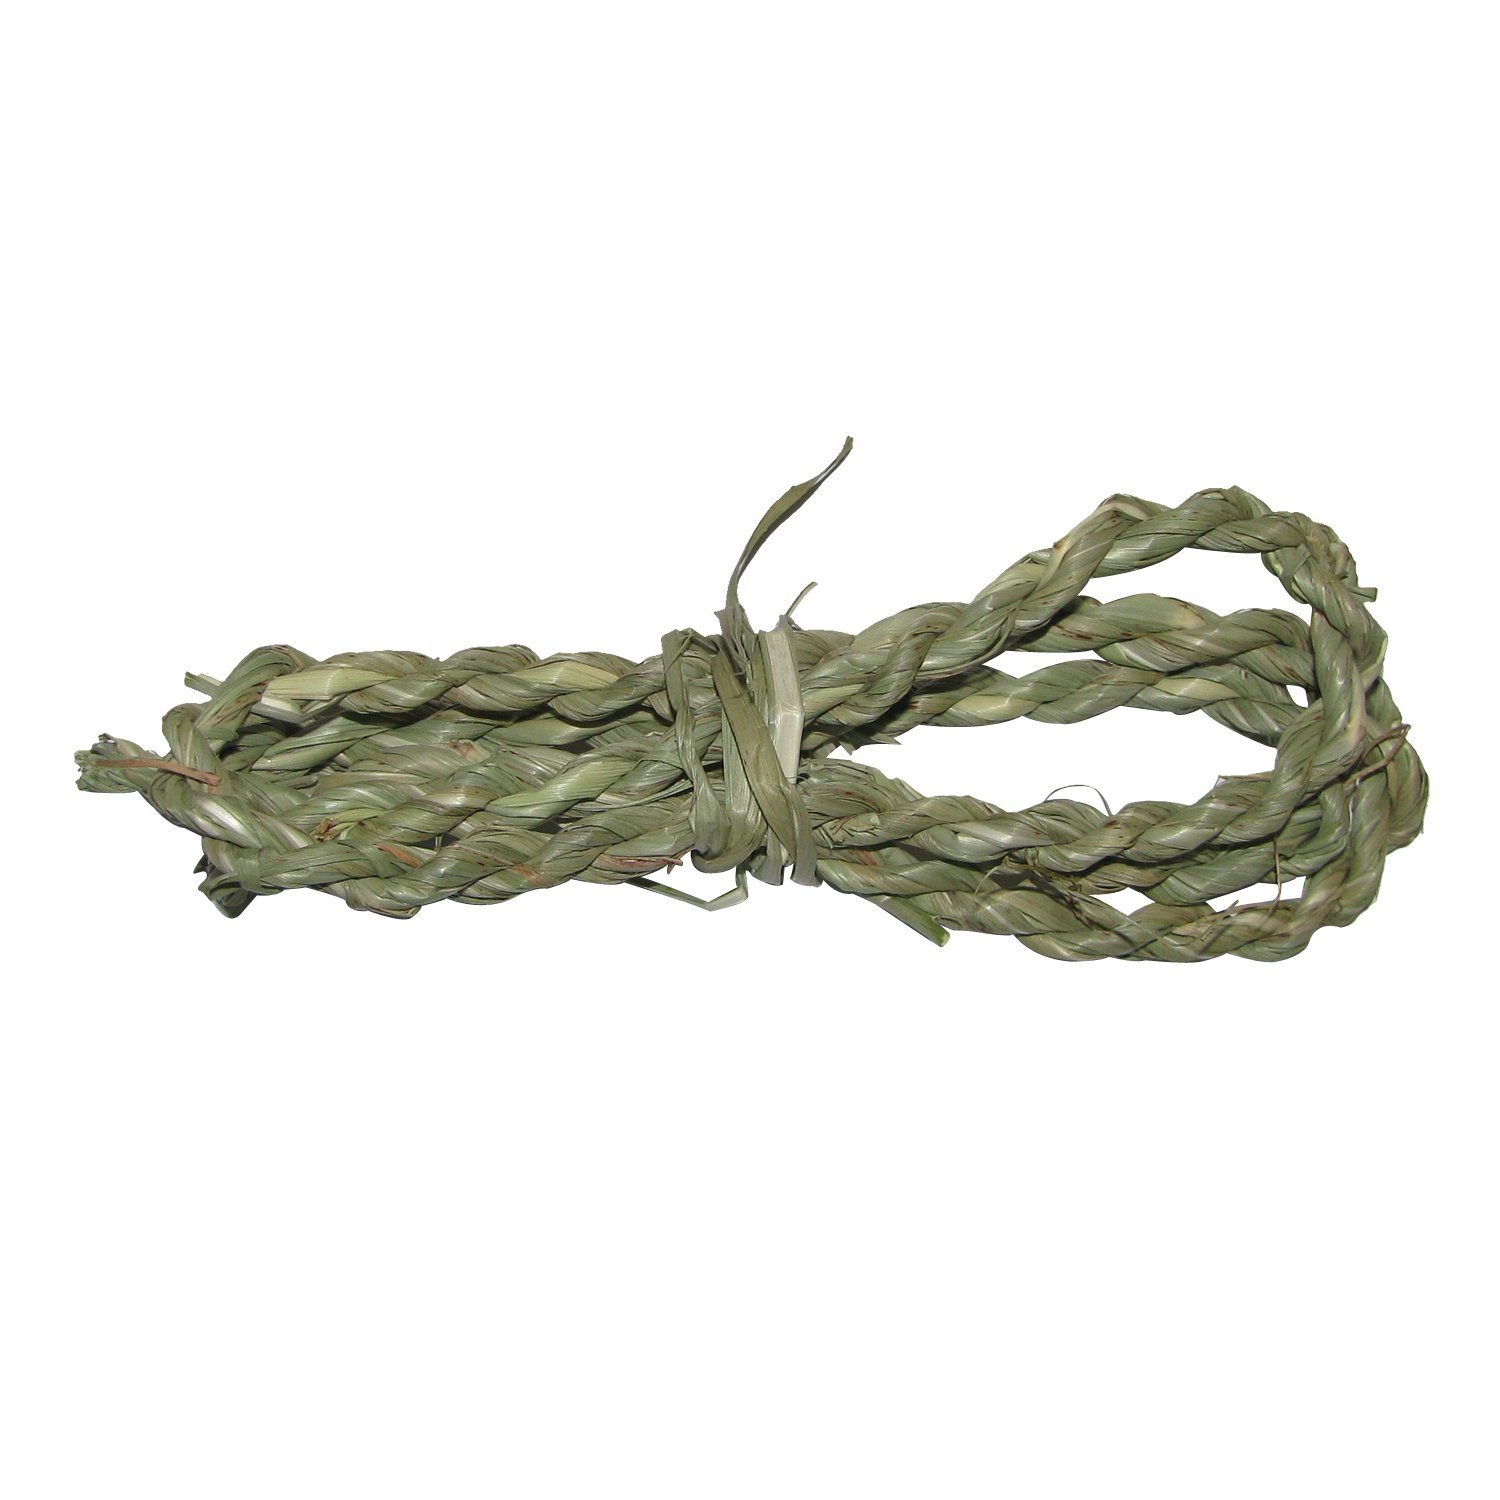 Devotional Store Darbha Rope Grass Thread Darba Thread Durva Kusha Thread 100% Natural - A4467